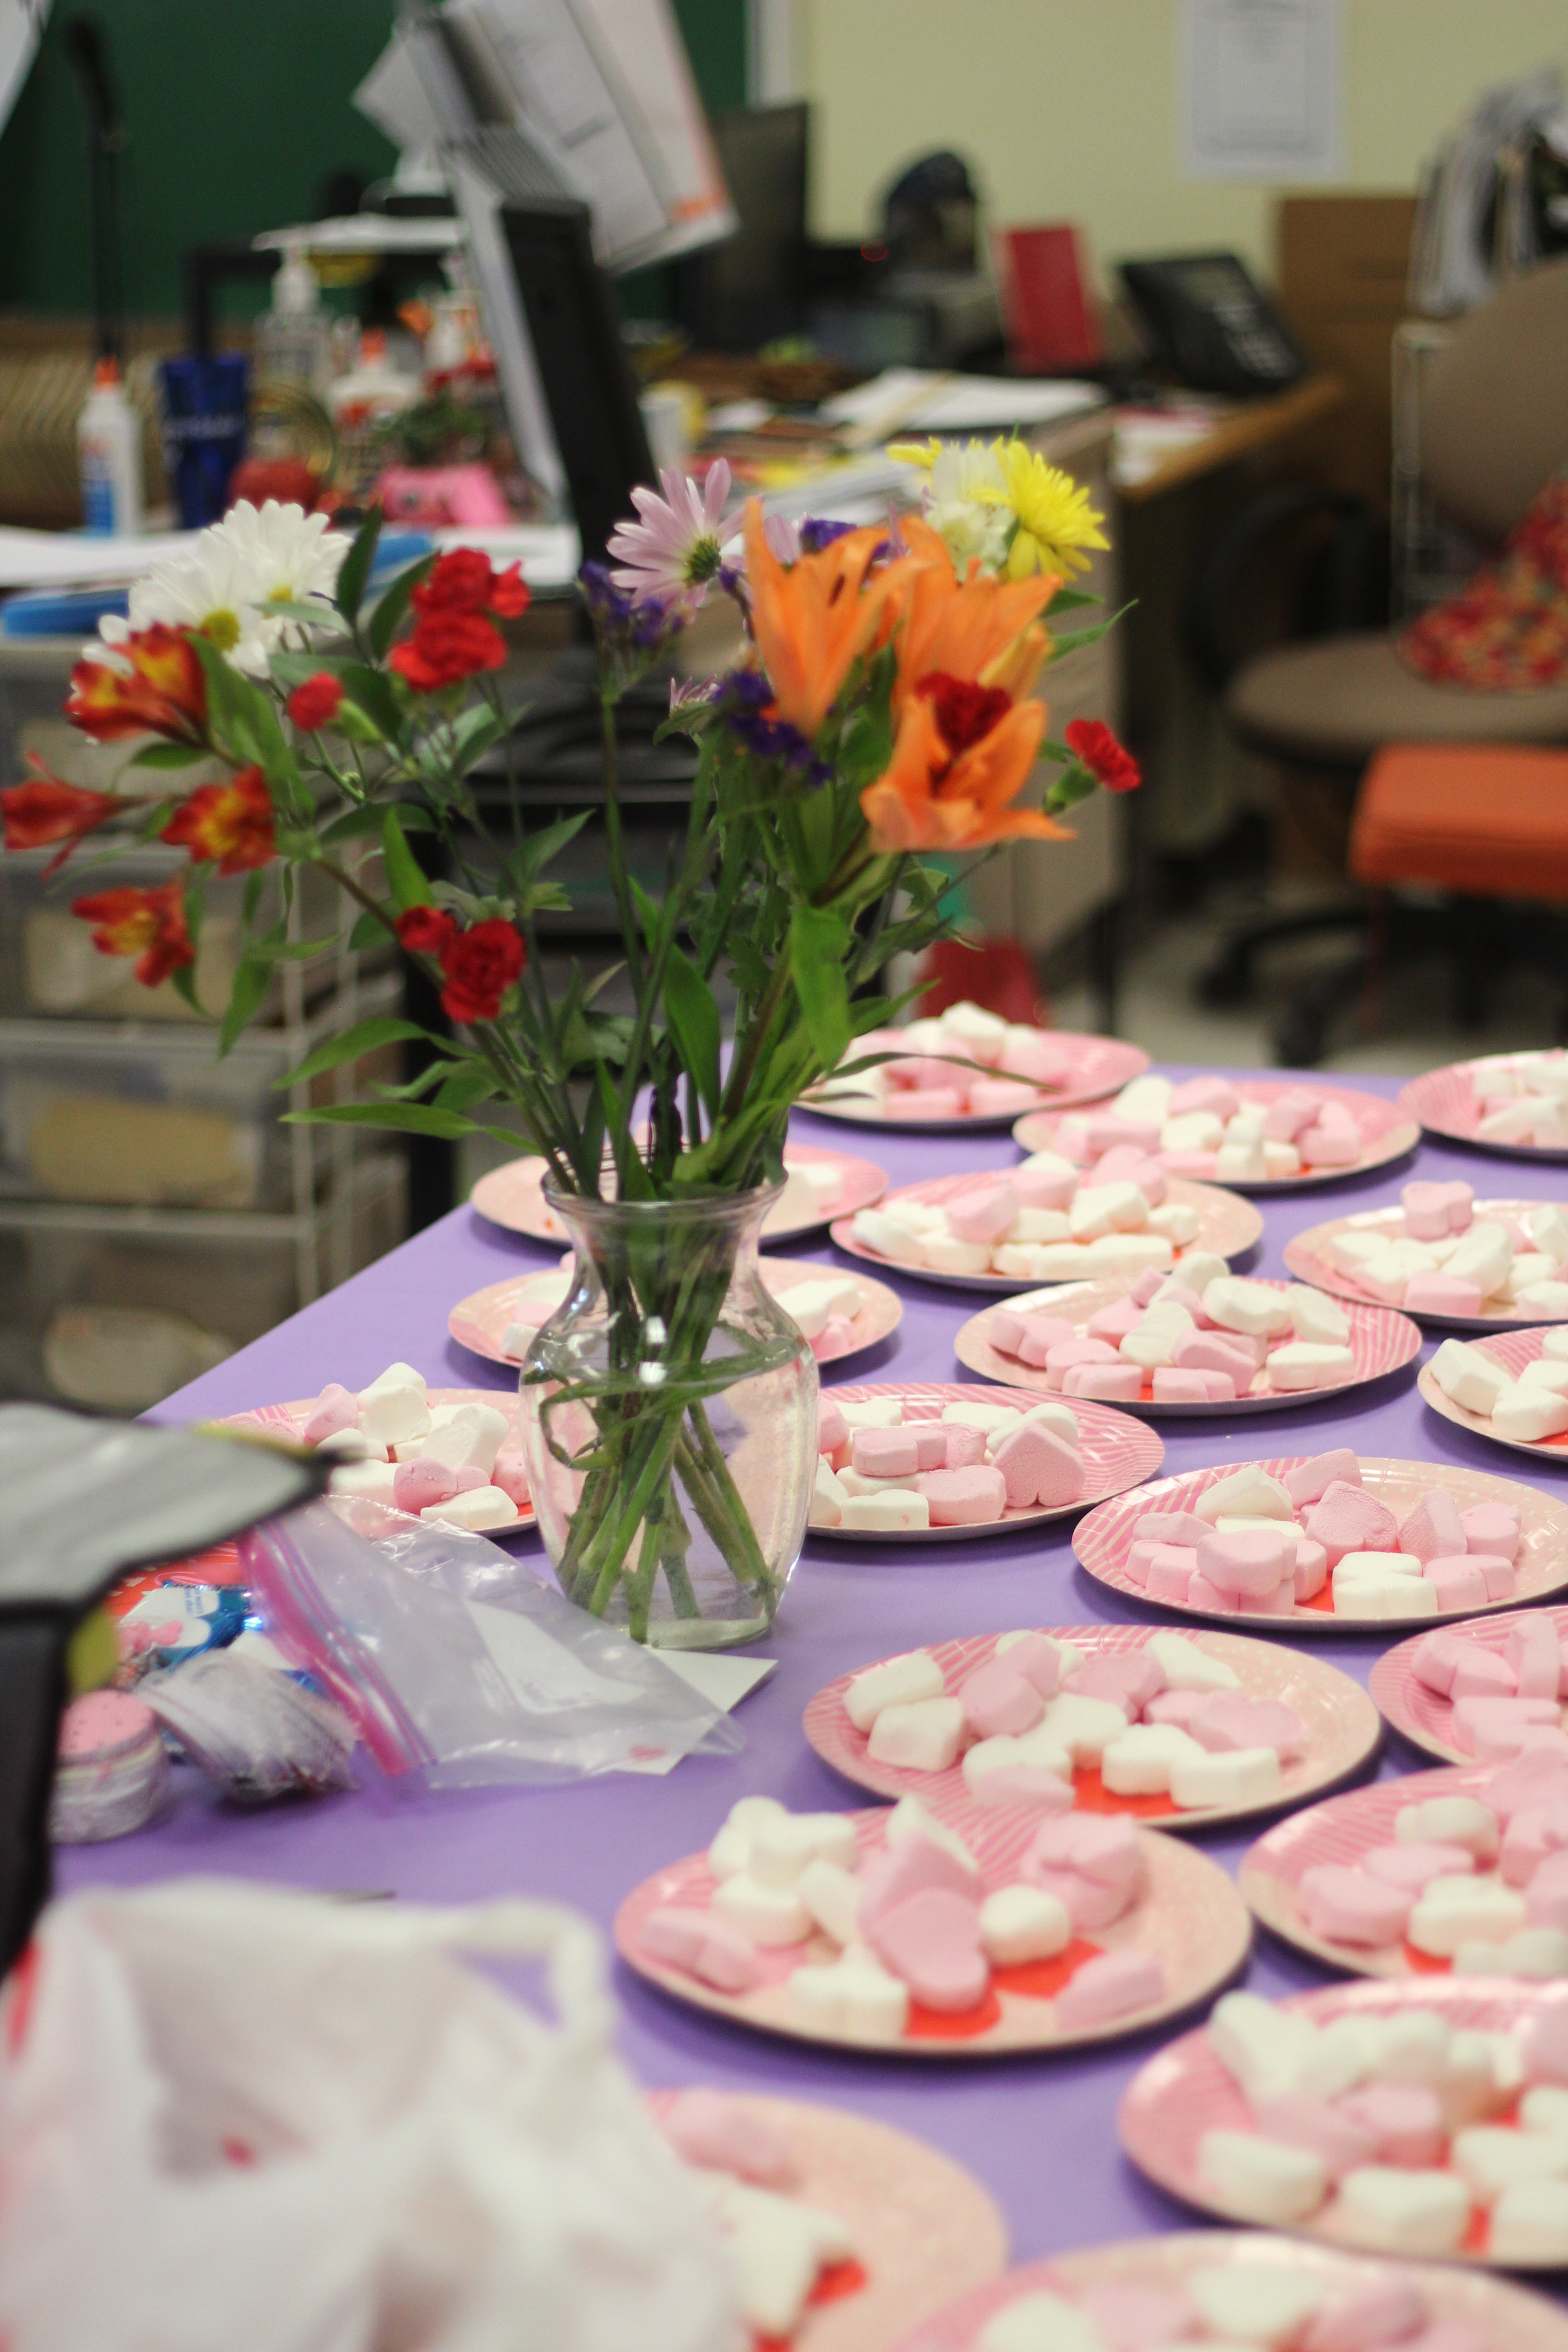 Food sits on a table for Vanlentines Day